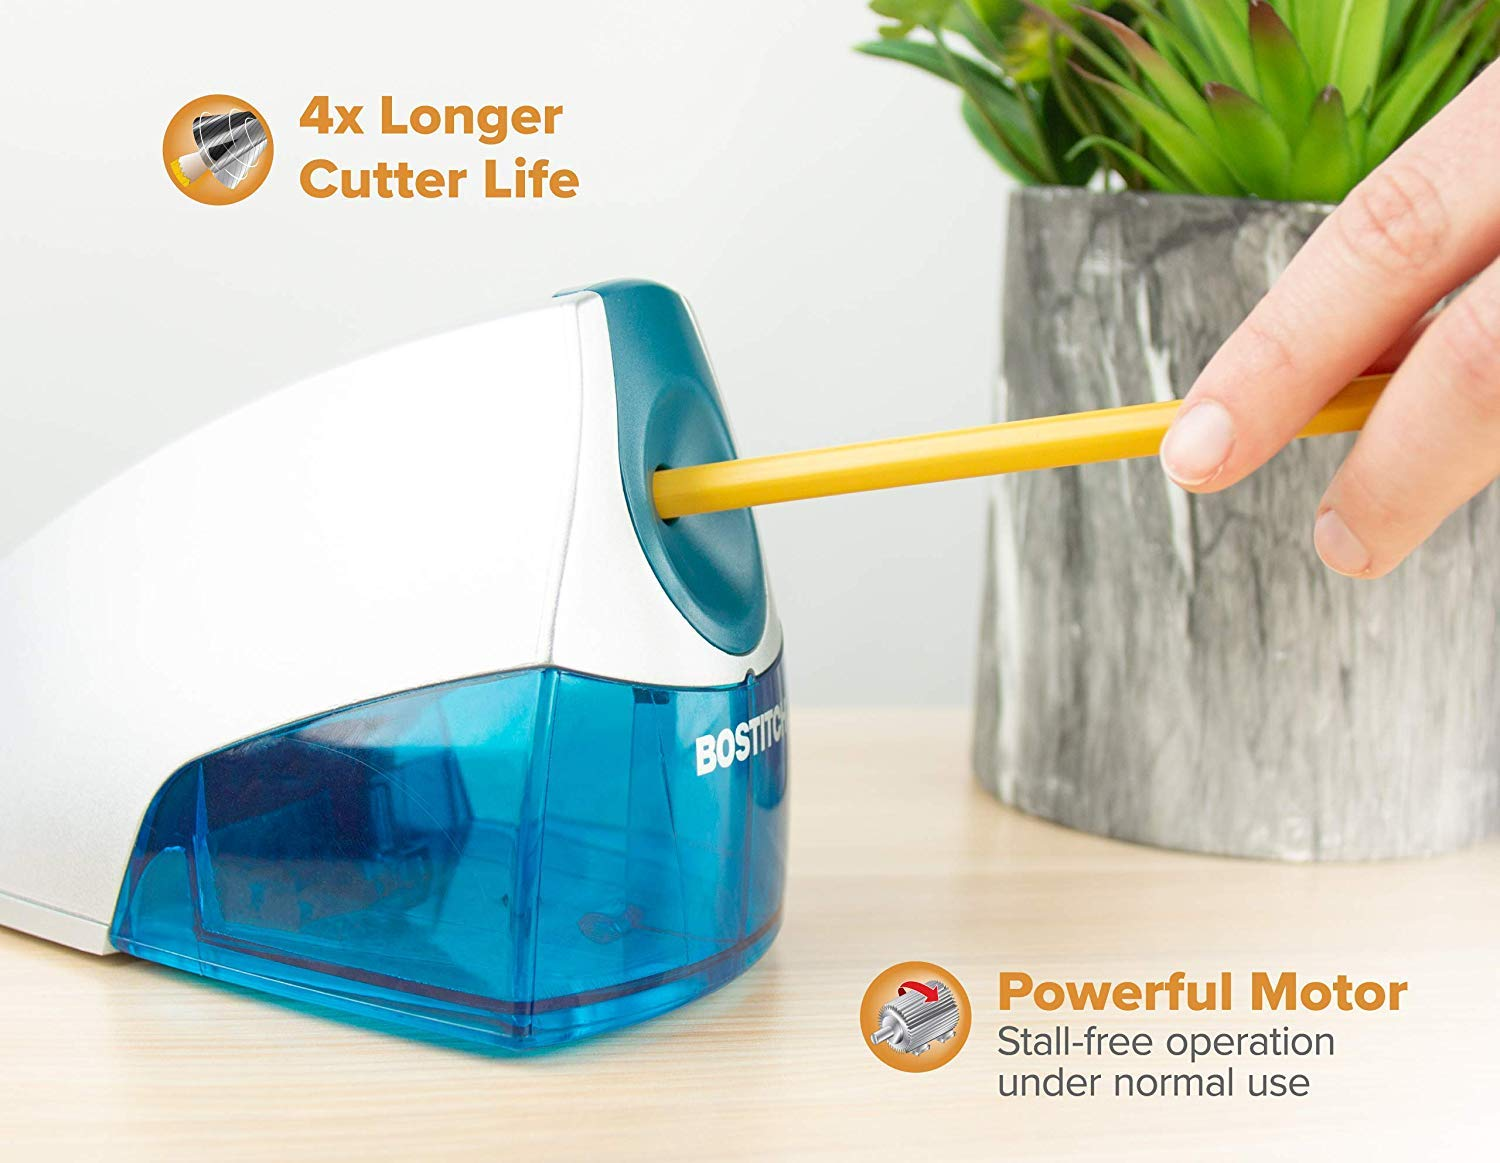 Bostitch Personal Electric Pencil Sharpener, Blue (EPS4-BLUE) - 5 Pack by Bostitch Office (Image #2)